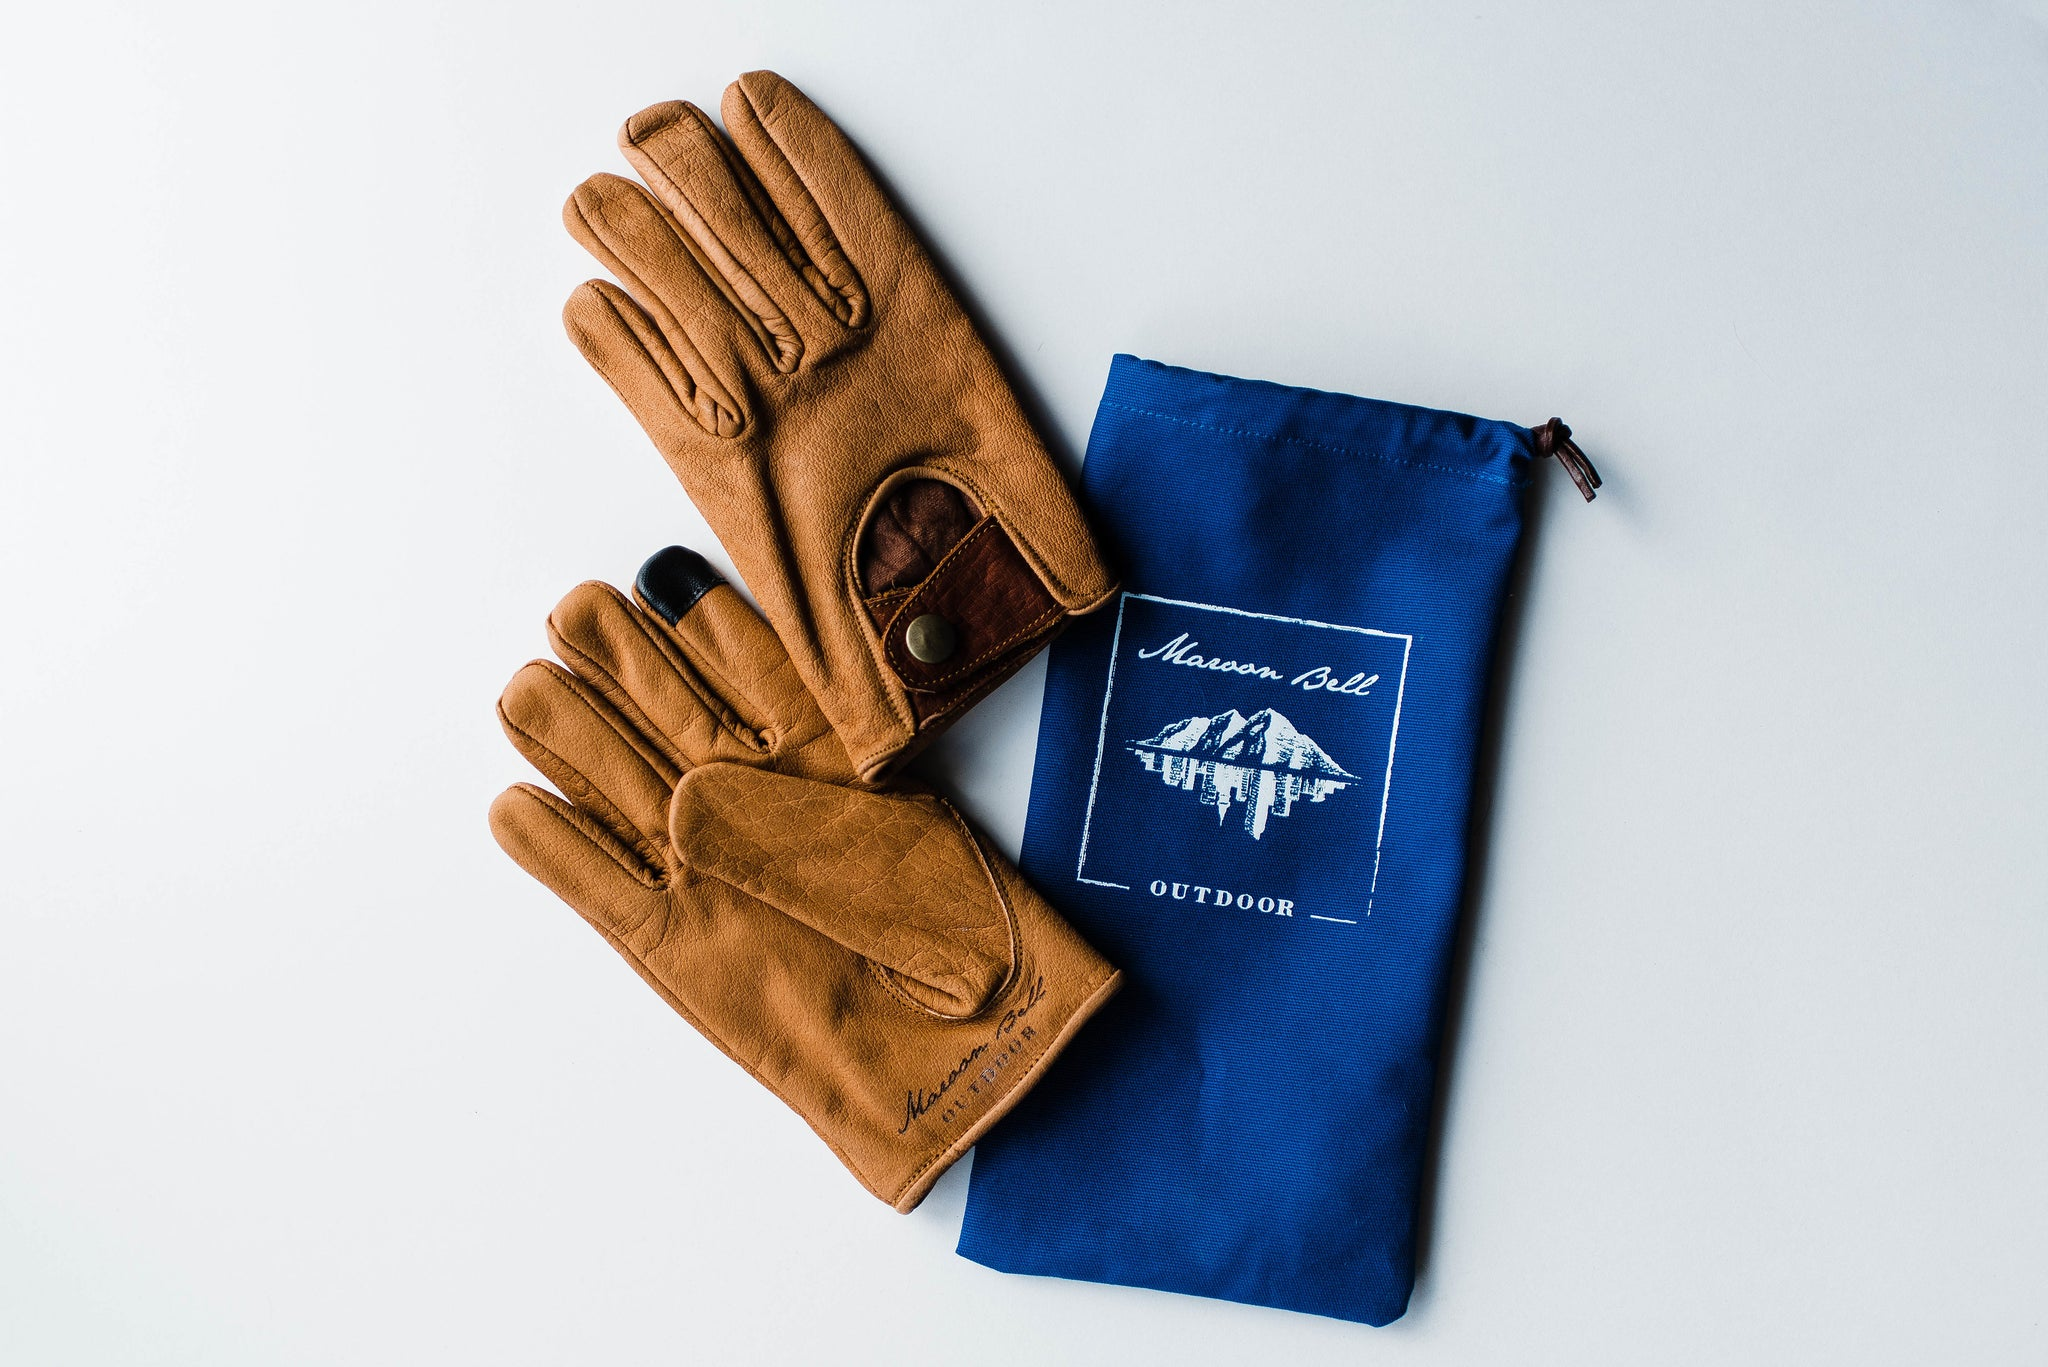 Buffalo Leather Gloves - Maroon Bell Outdoor